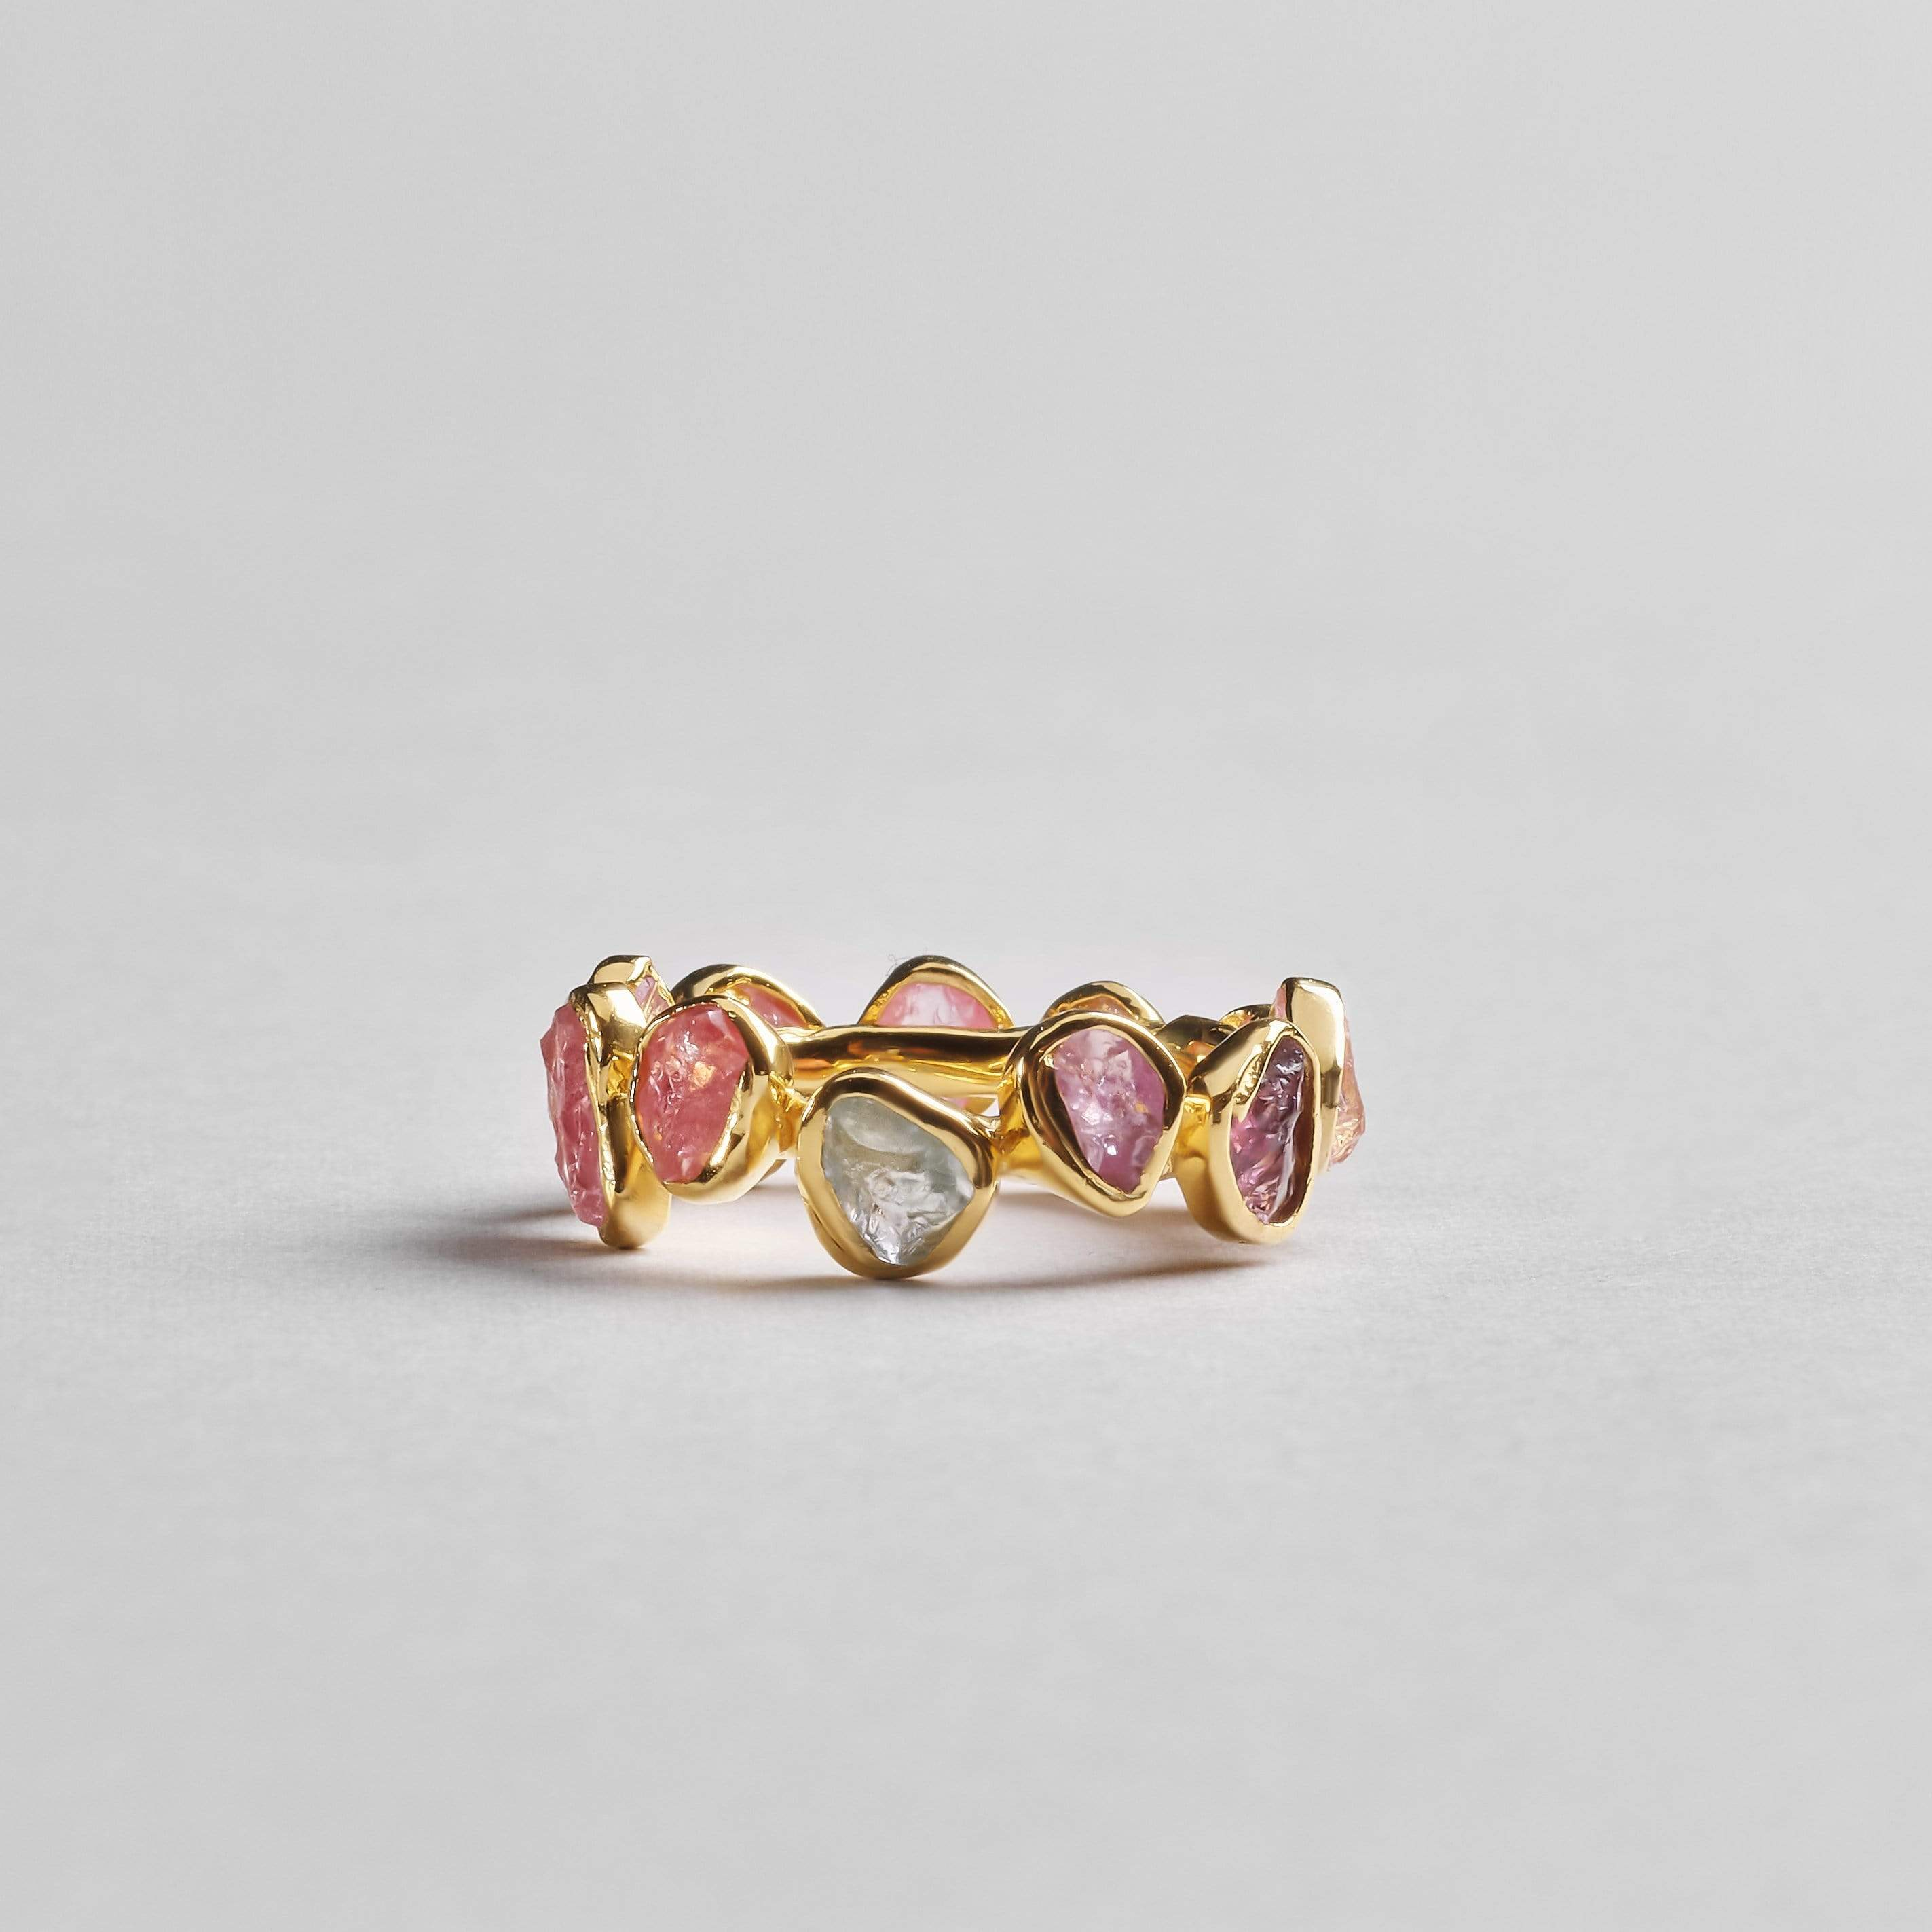 Livia Fancy Ring, Gold, Handmade, Sapphire, spo-disabled, StoneColor:PastelColor, Style:Delicate, Type:StoneCandyDelicate Ring